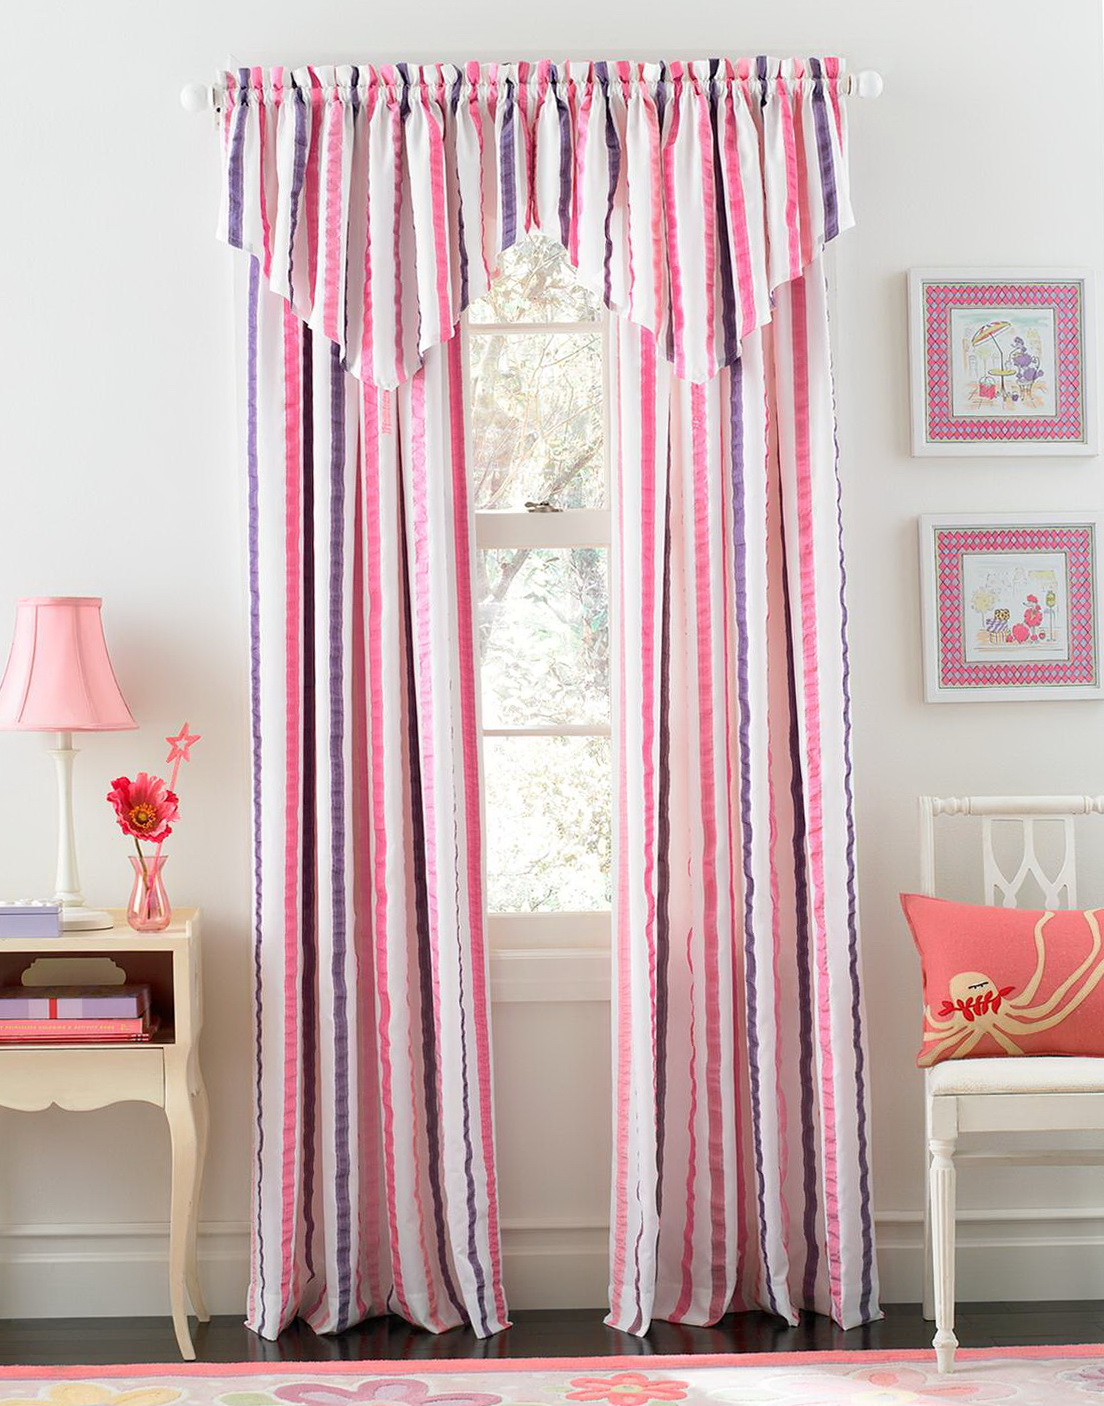 for dolls on rugs motive wall girl stool window cute baby pastel bear pink and closed blanket plus rooms nursery white area tile tips color paint curtains bedroom